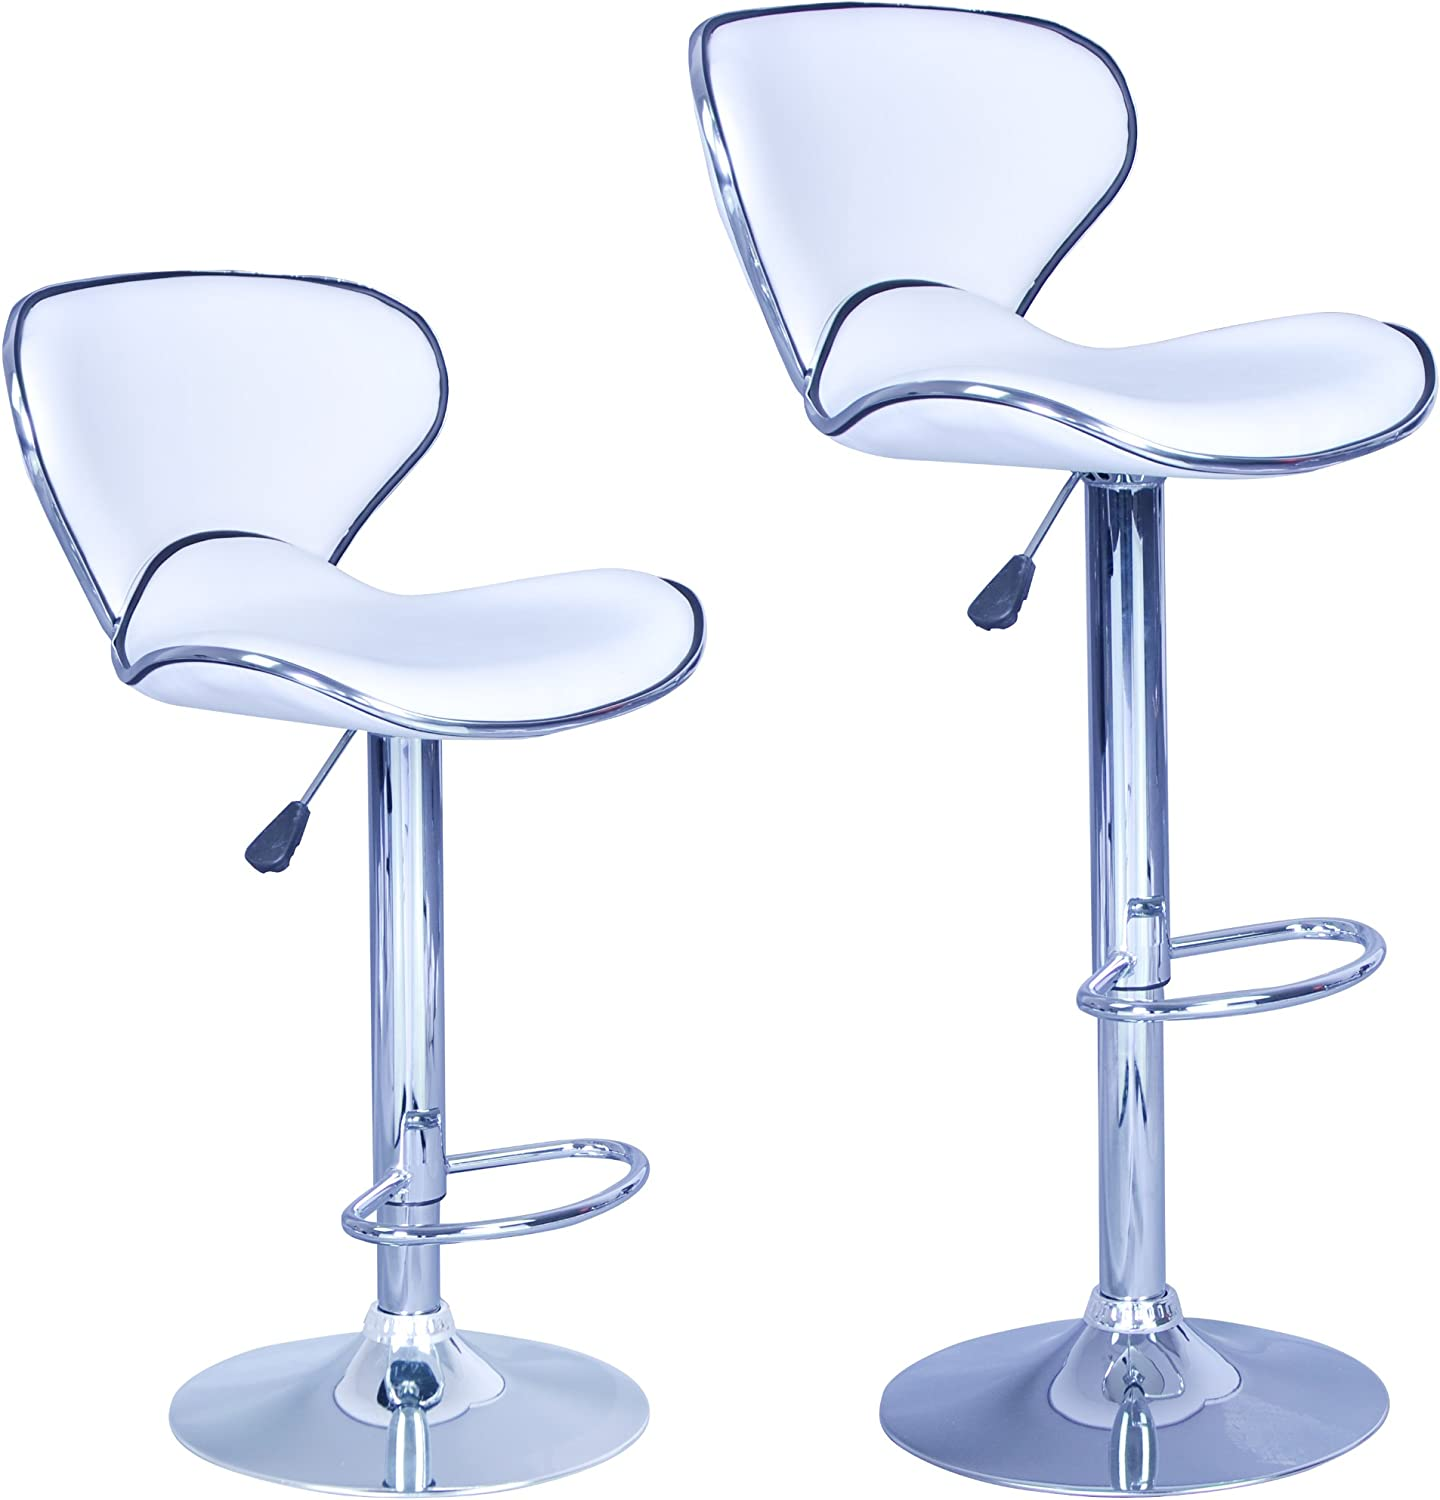 Stool Swivel Bar Stools Counter Height Stools PU Leather Kitchen Stools Dining Chairs With Back